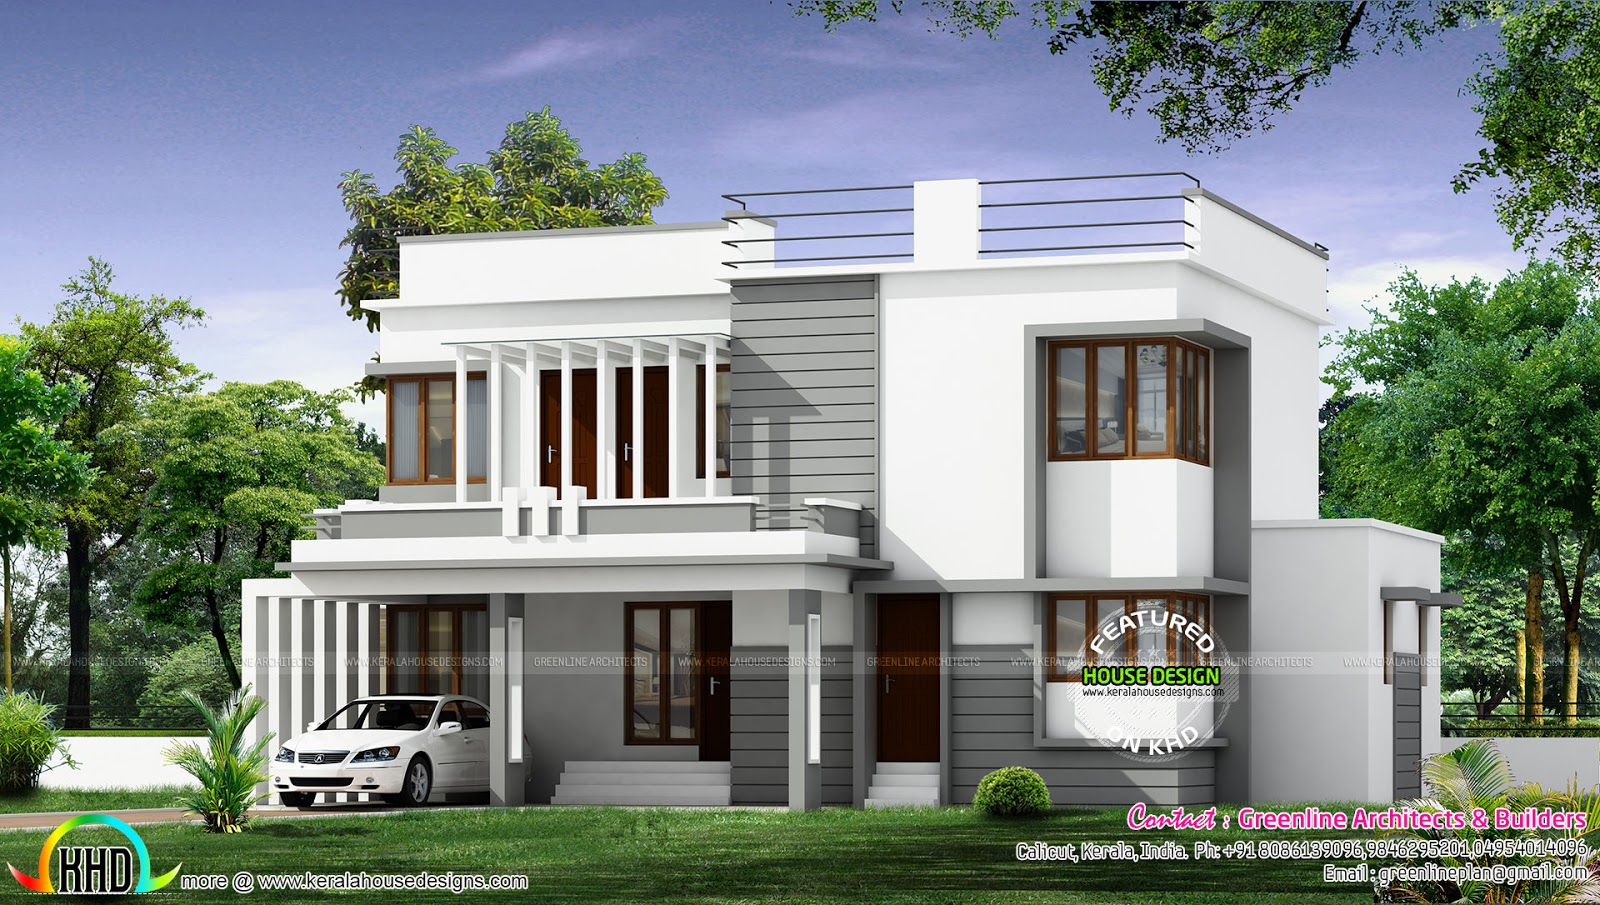 new modern house architecture kerala home design and floor plans. Black Bedroom Furniture Sets. Home Design Ideas